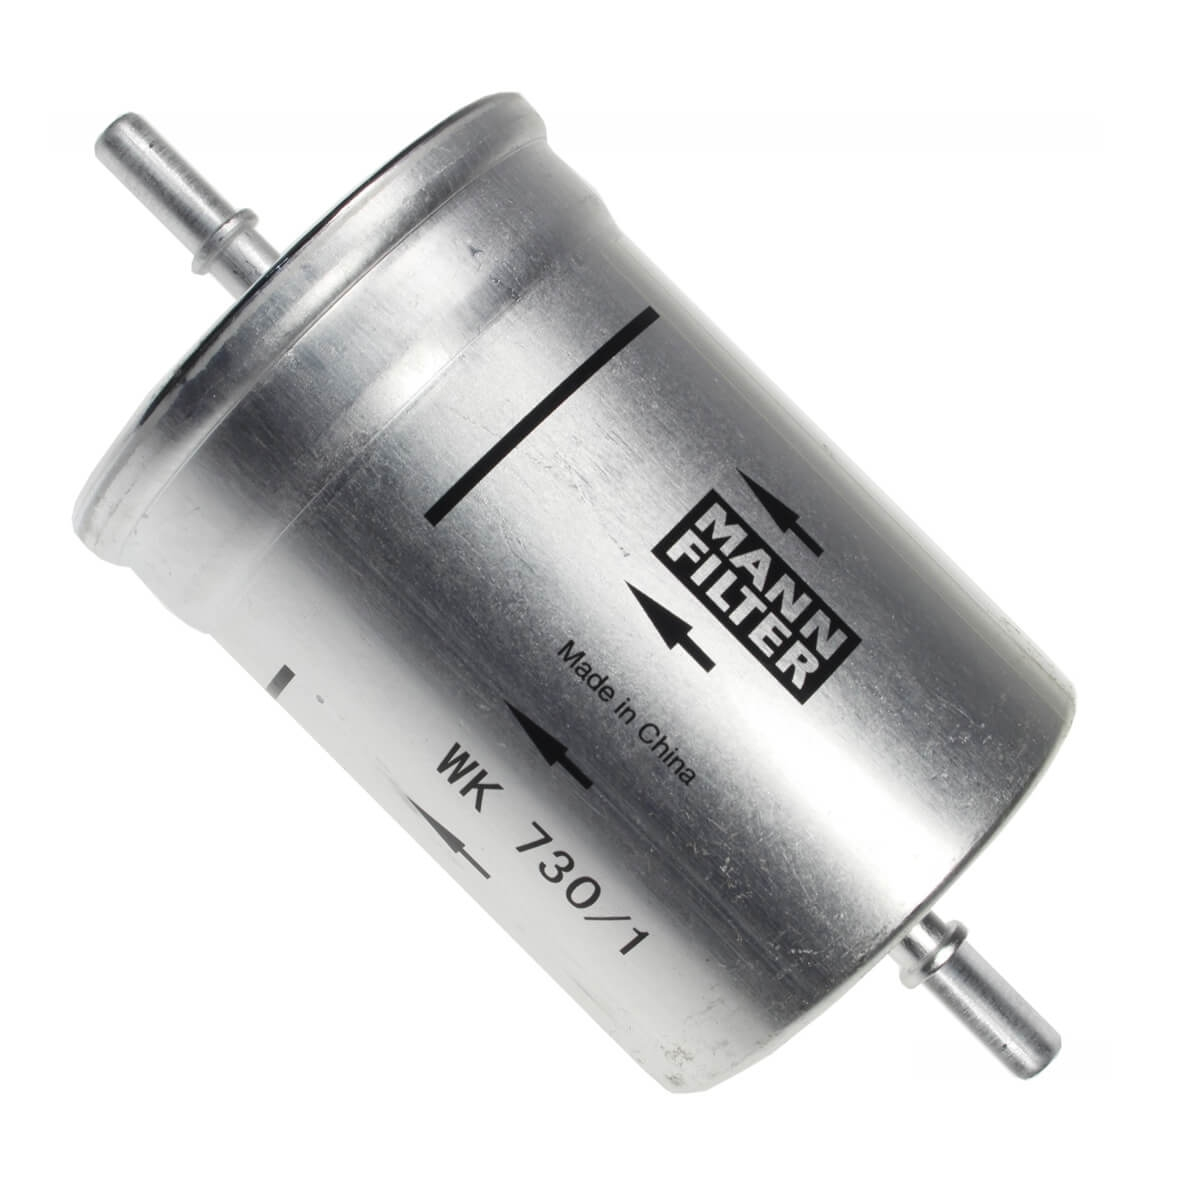 HONDA BEAT Fuel Filters